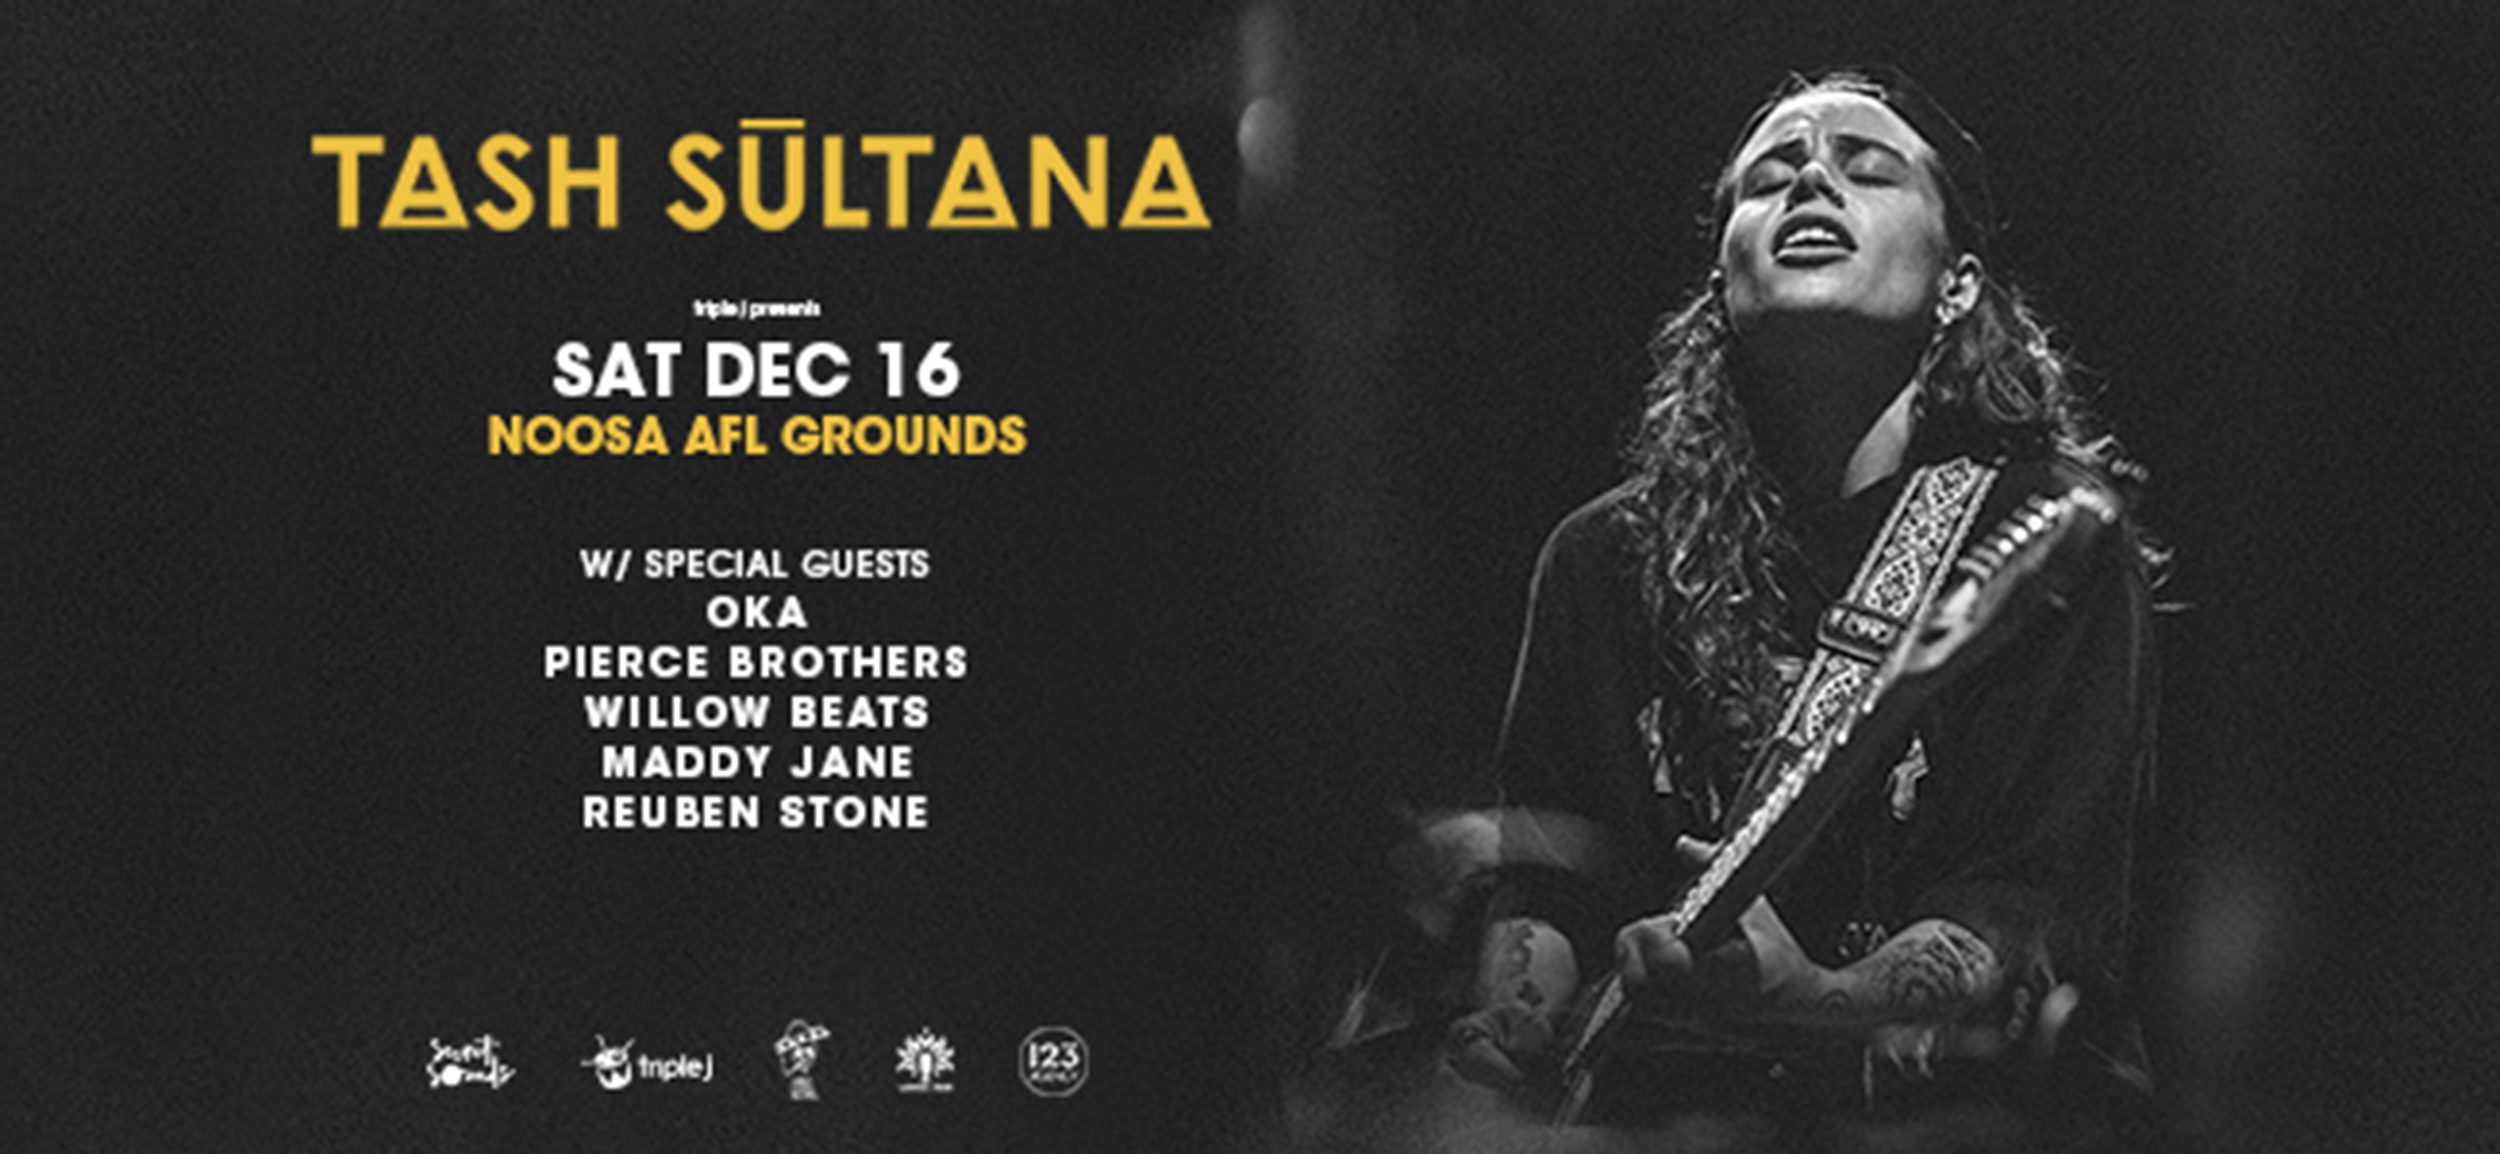 Here's Your Last Chance To See Tash Sultana Until The End Of 2018!